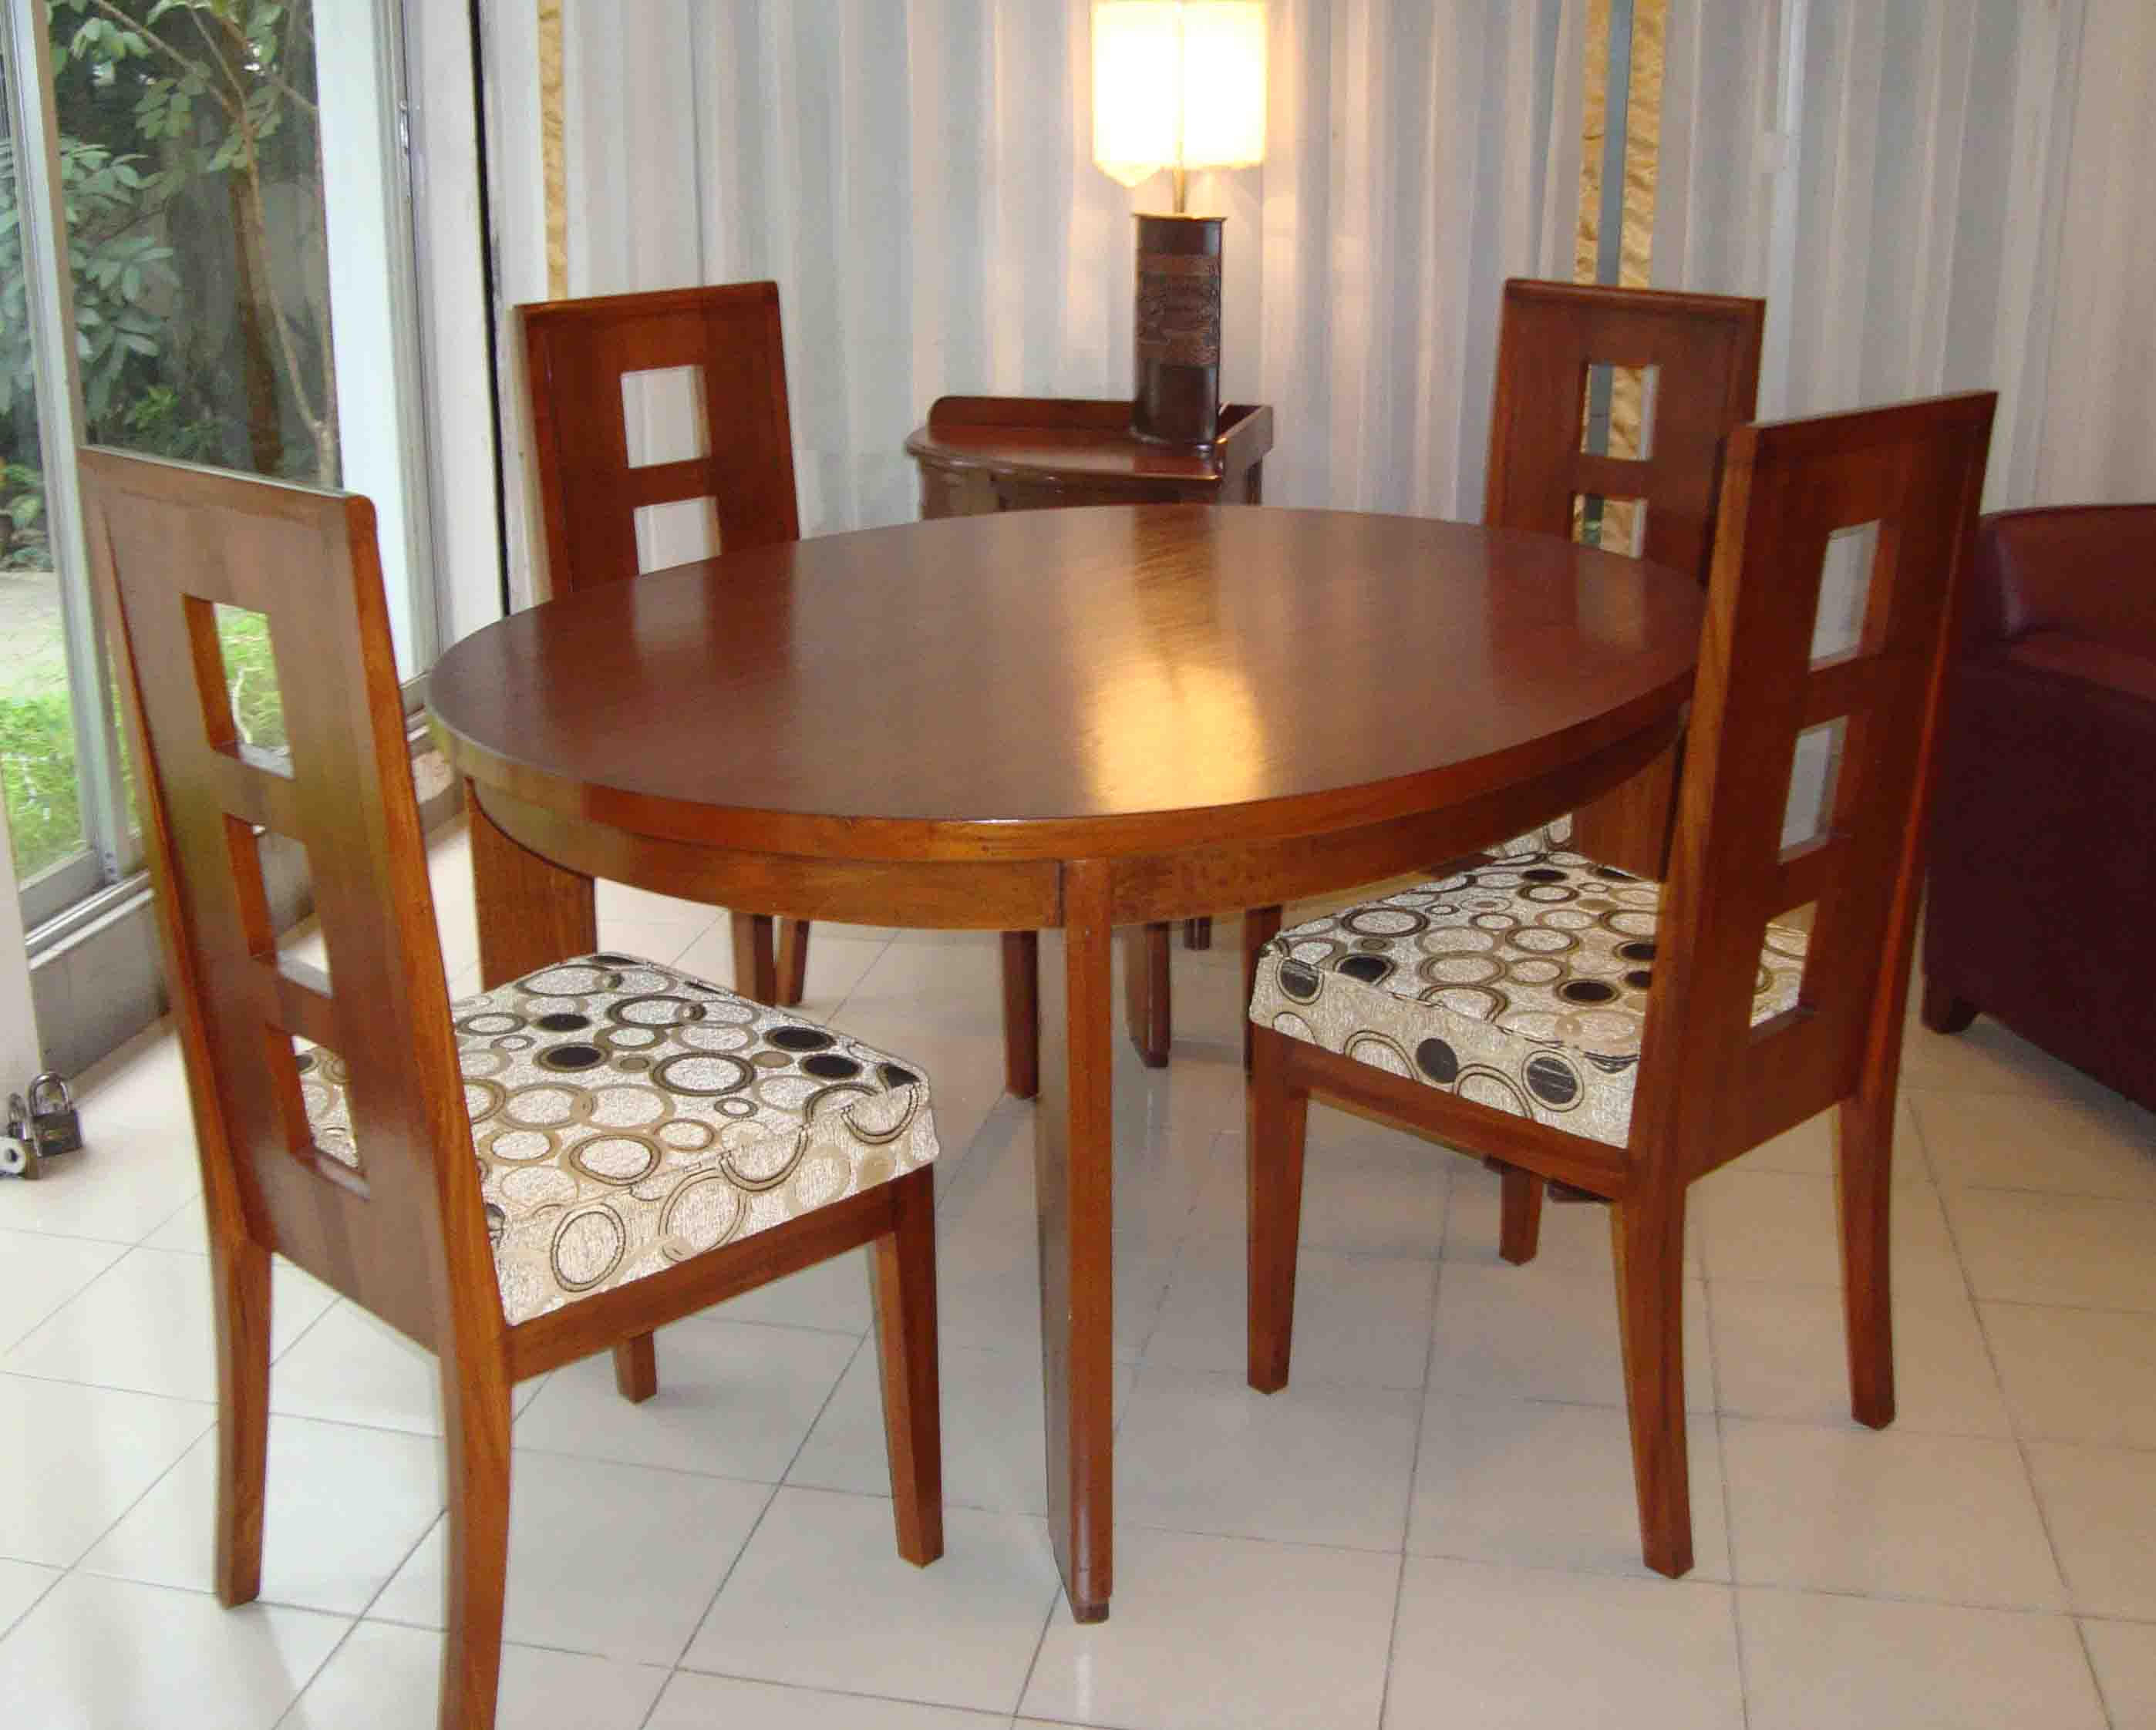 NZA - Dining Table With 4 Chairs Made Of Solid Wood.